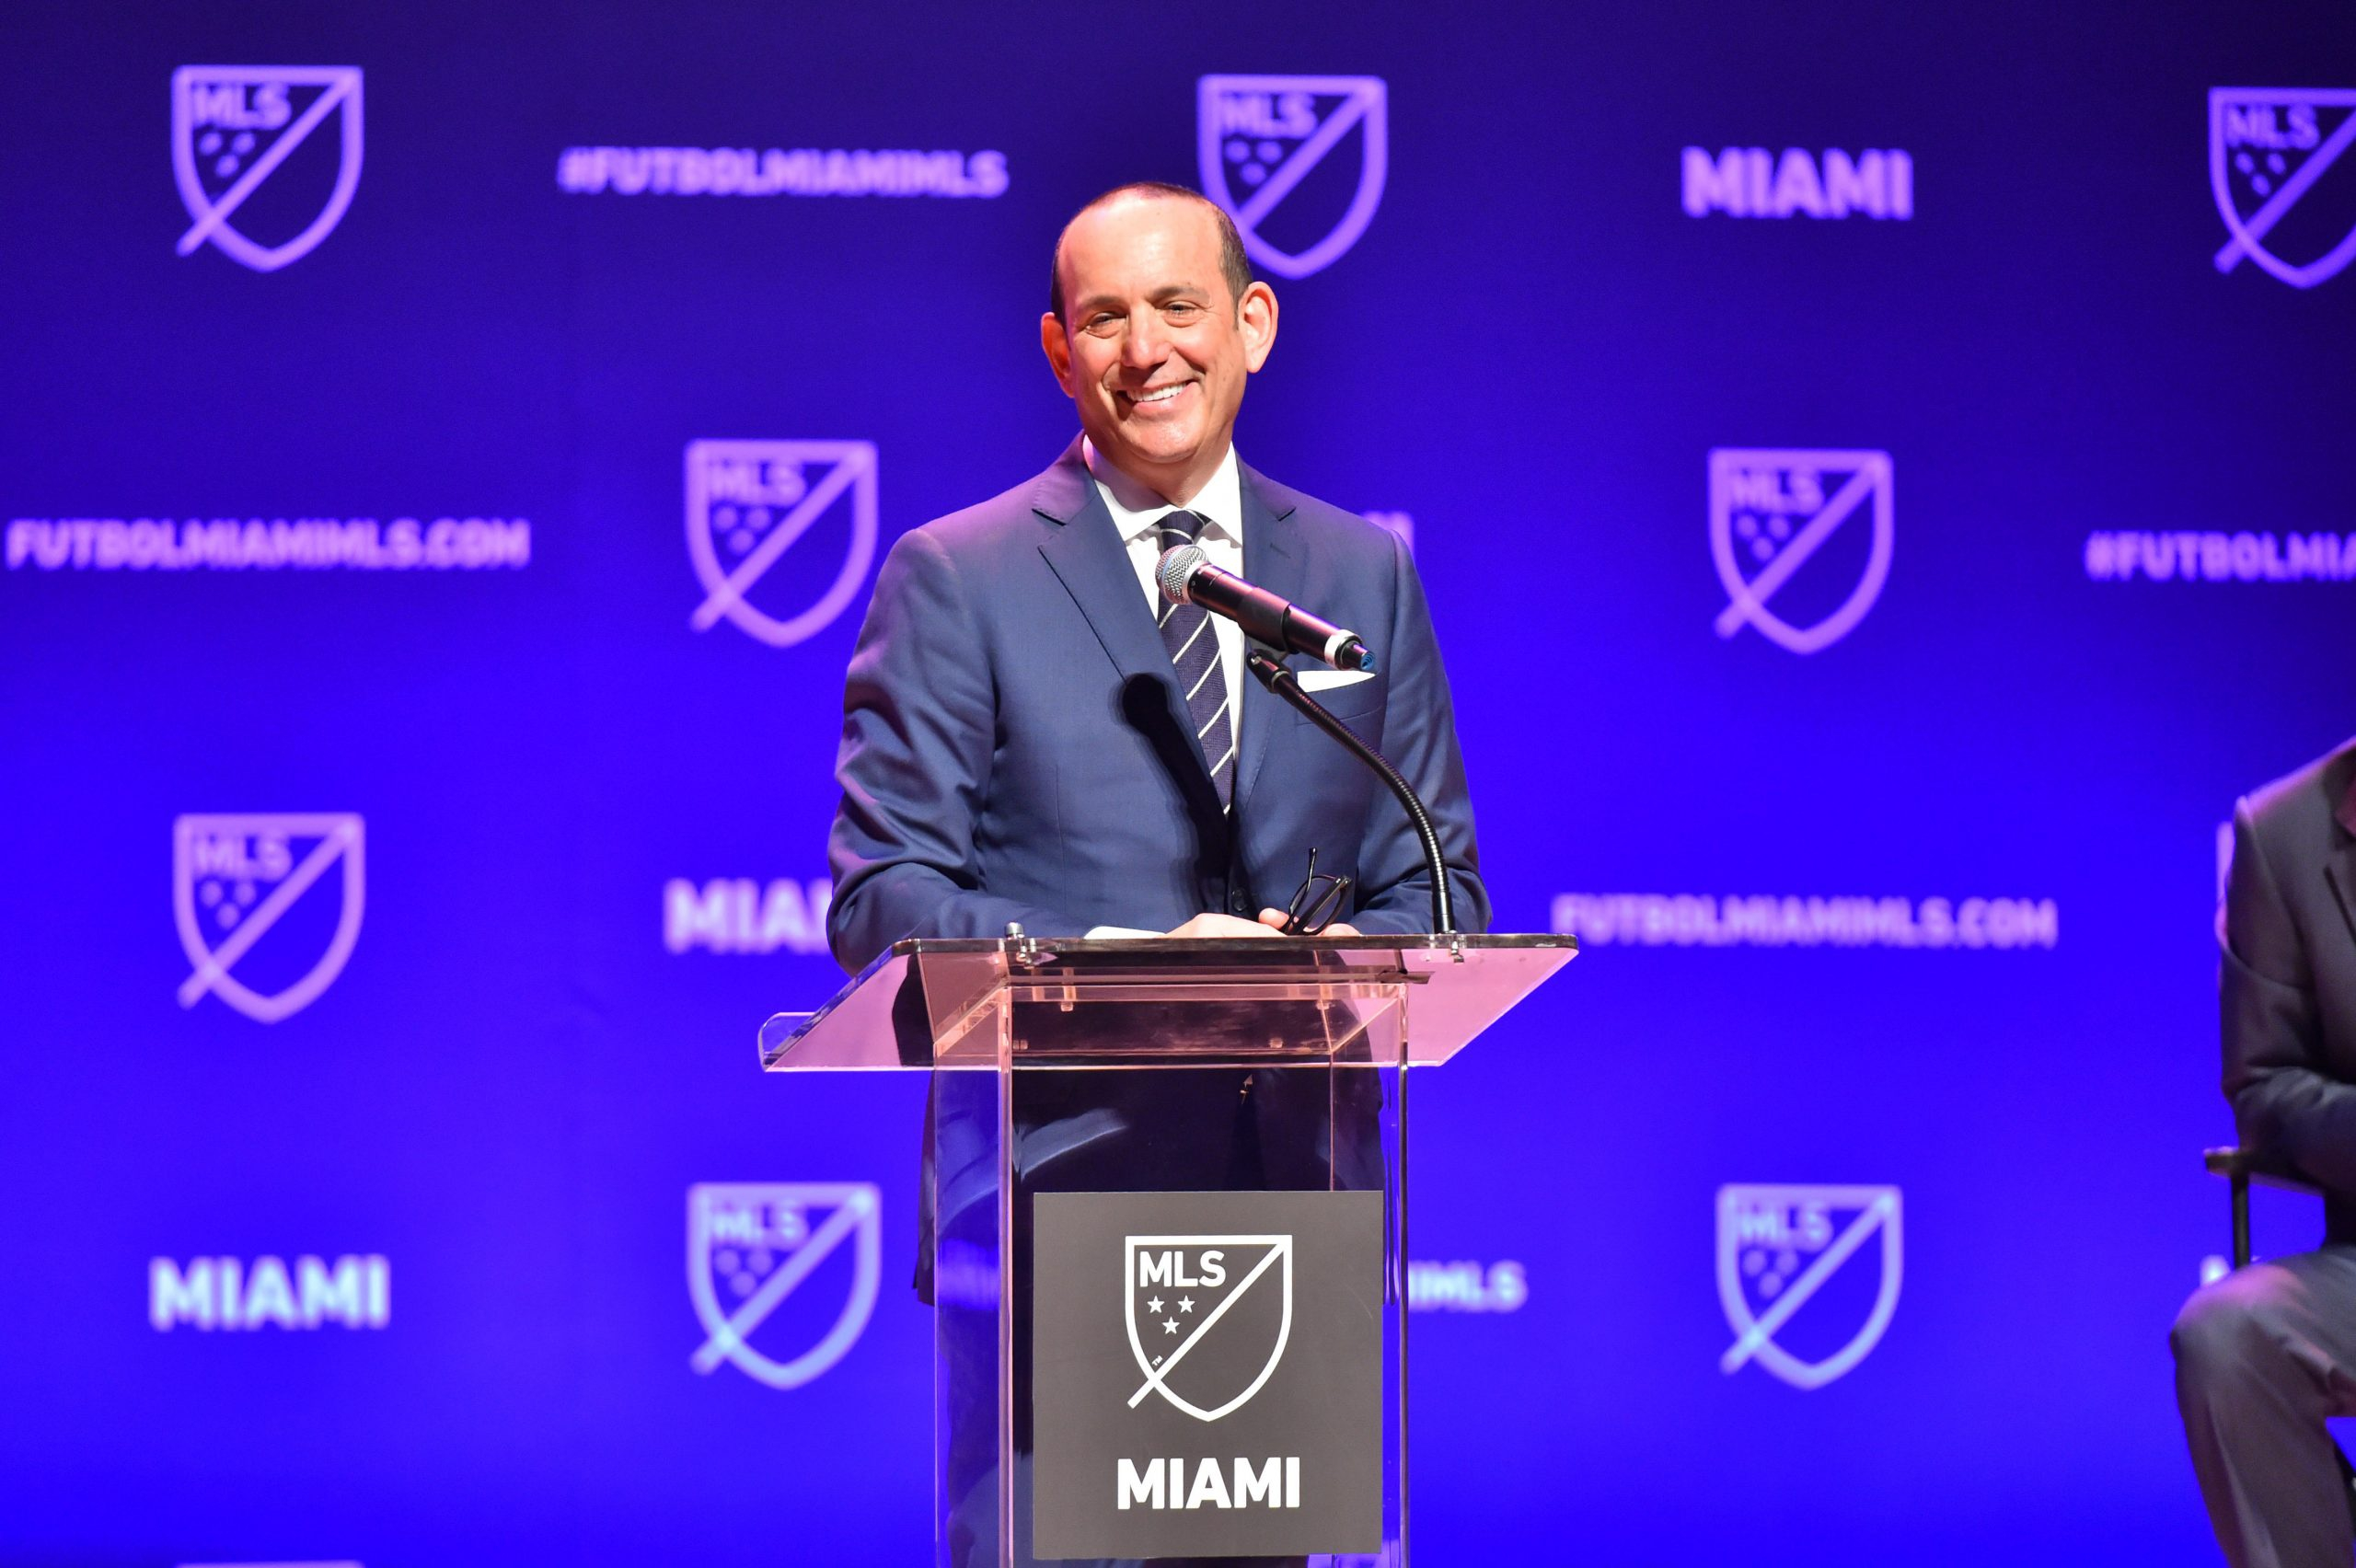 MLS unveils initiatives to combat racism and advocate for social justice